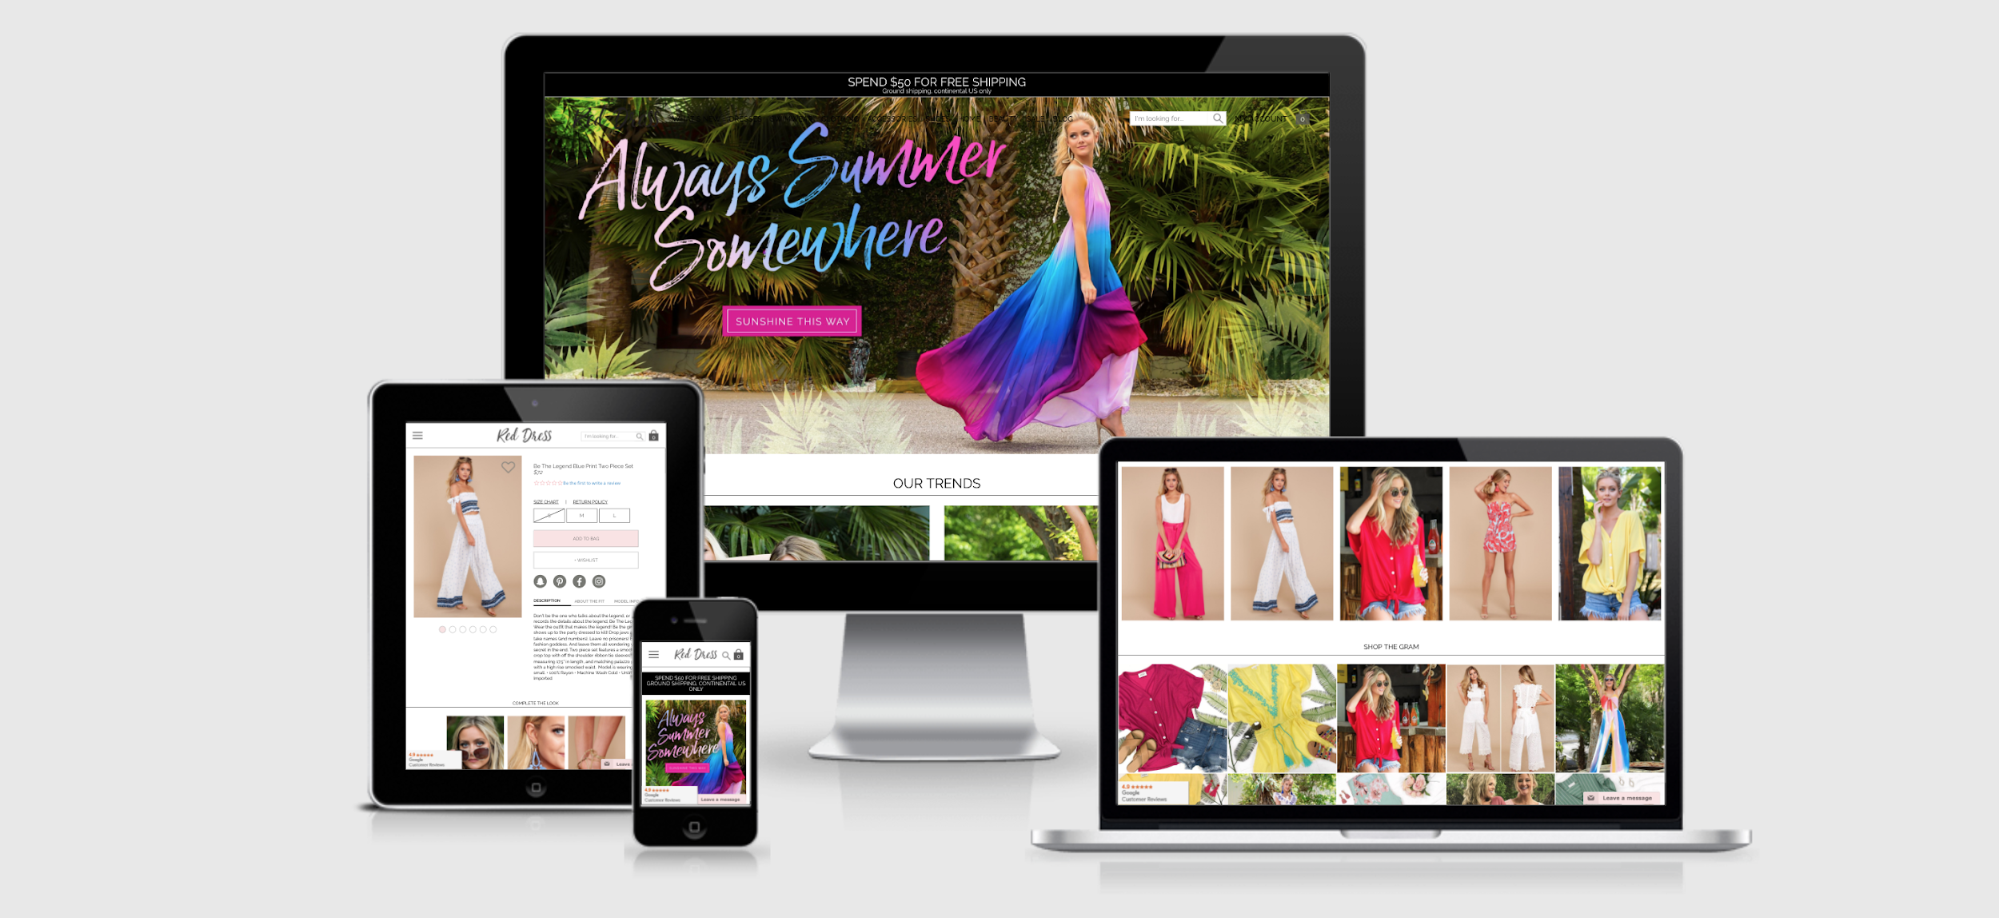 Red Dress Boutique's new site after replatforming from Magento